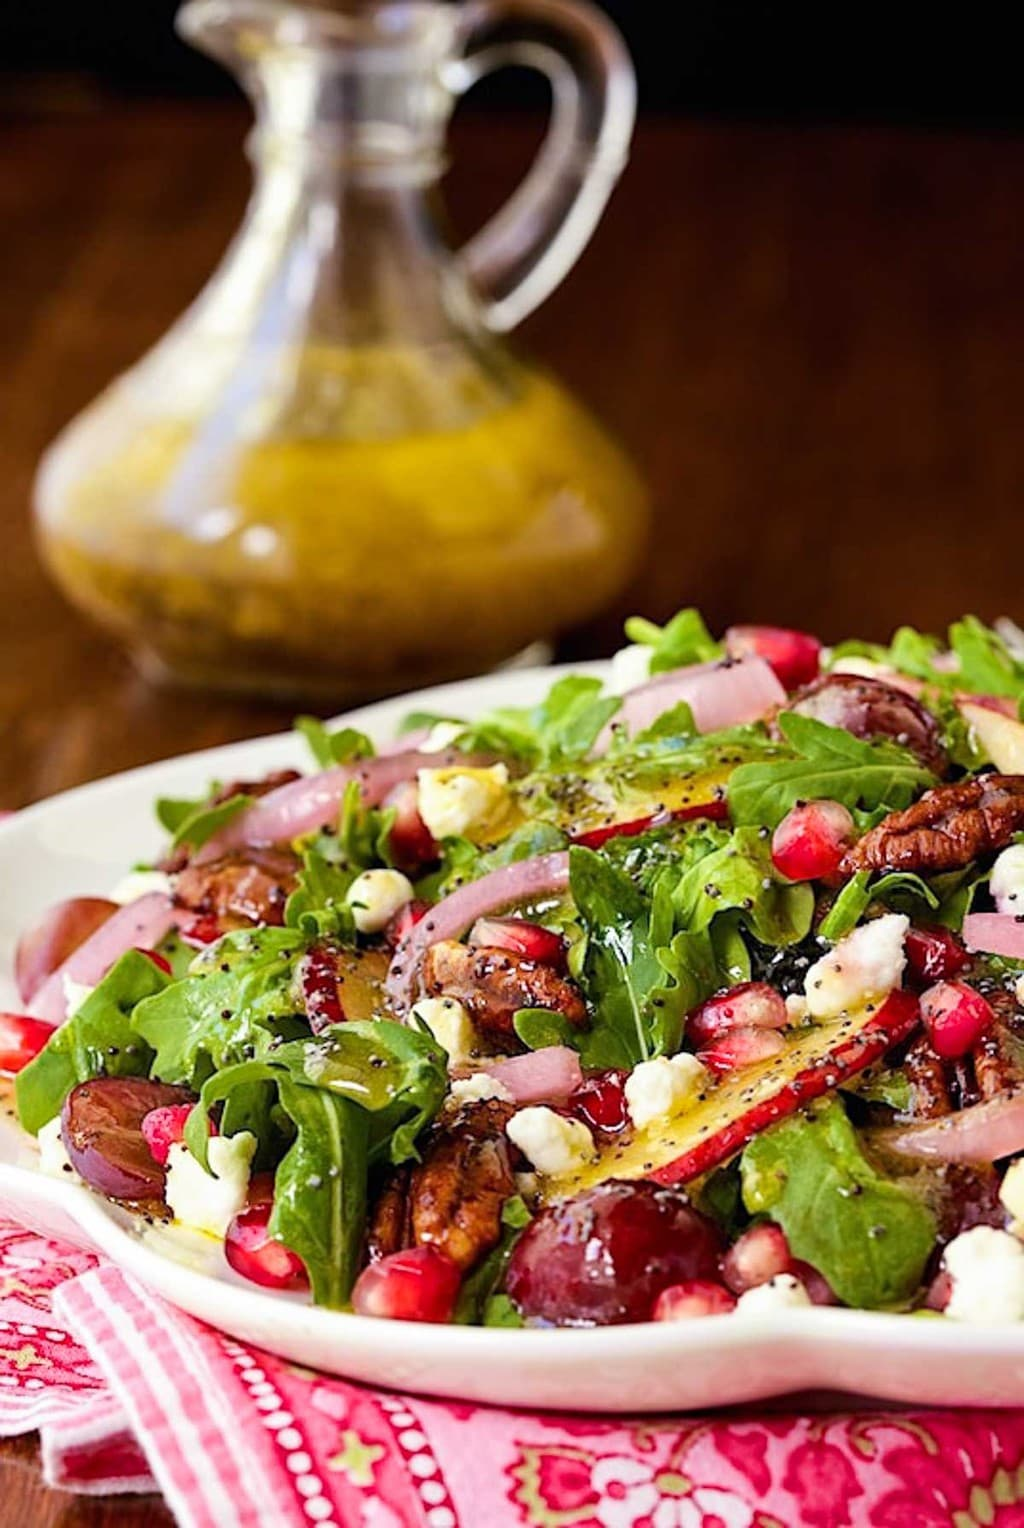 Arugula, Pom and Pear Salad